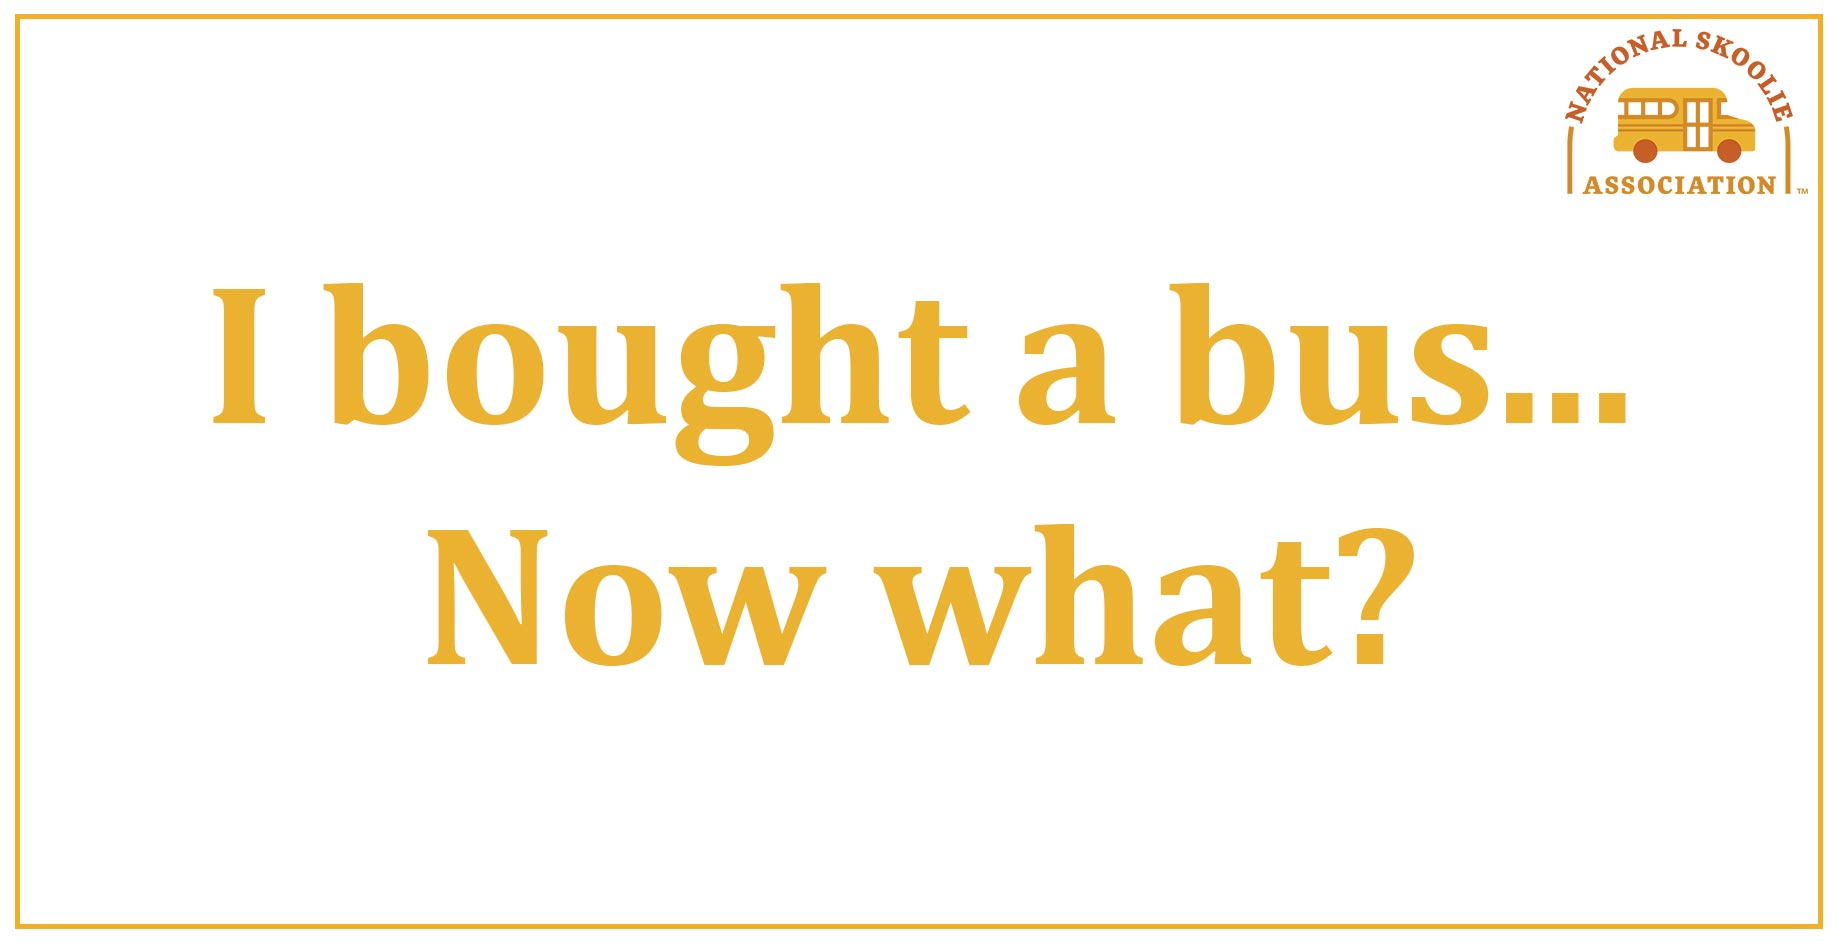 I bought a bus…Now what?